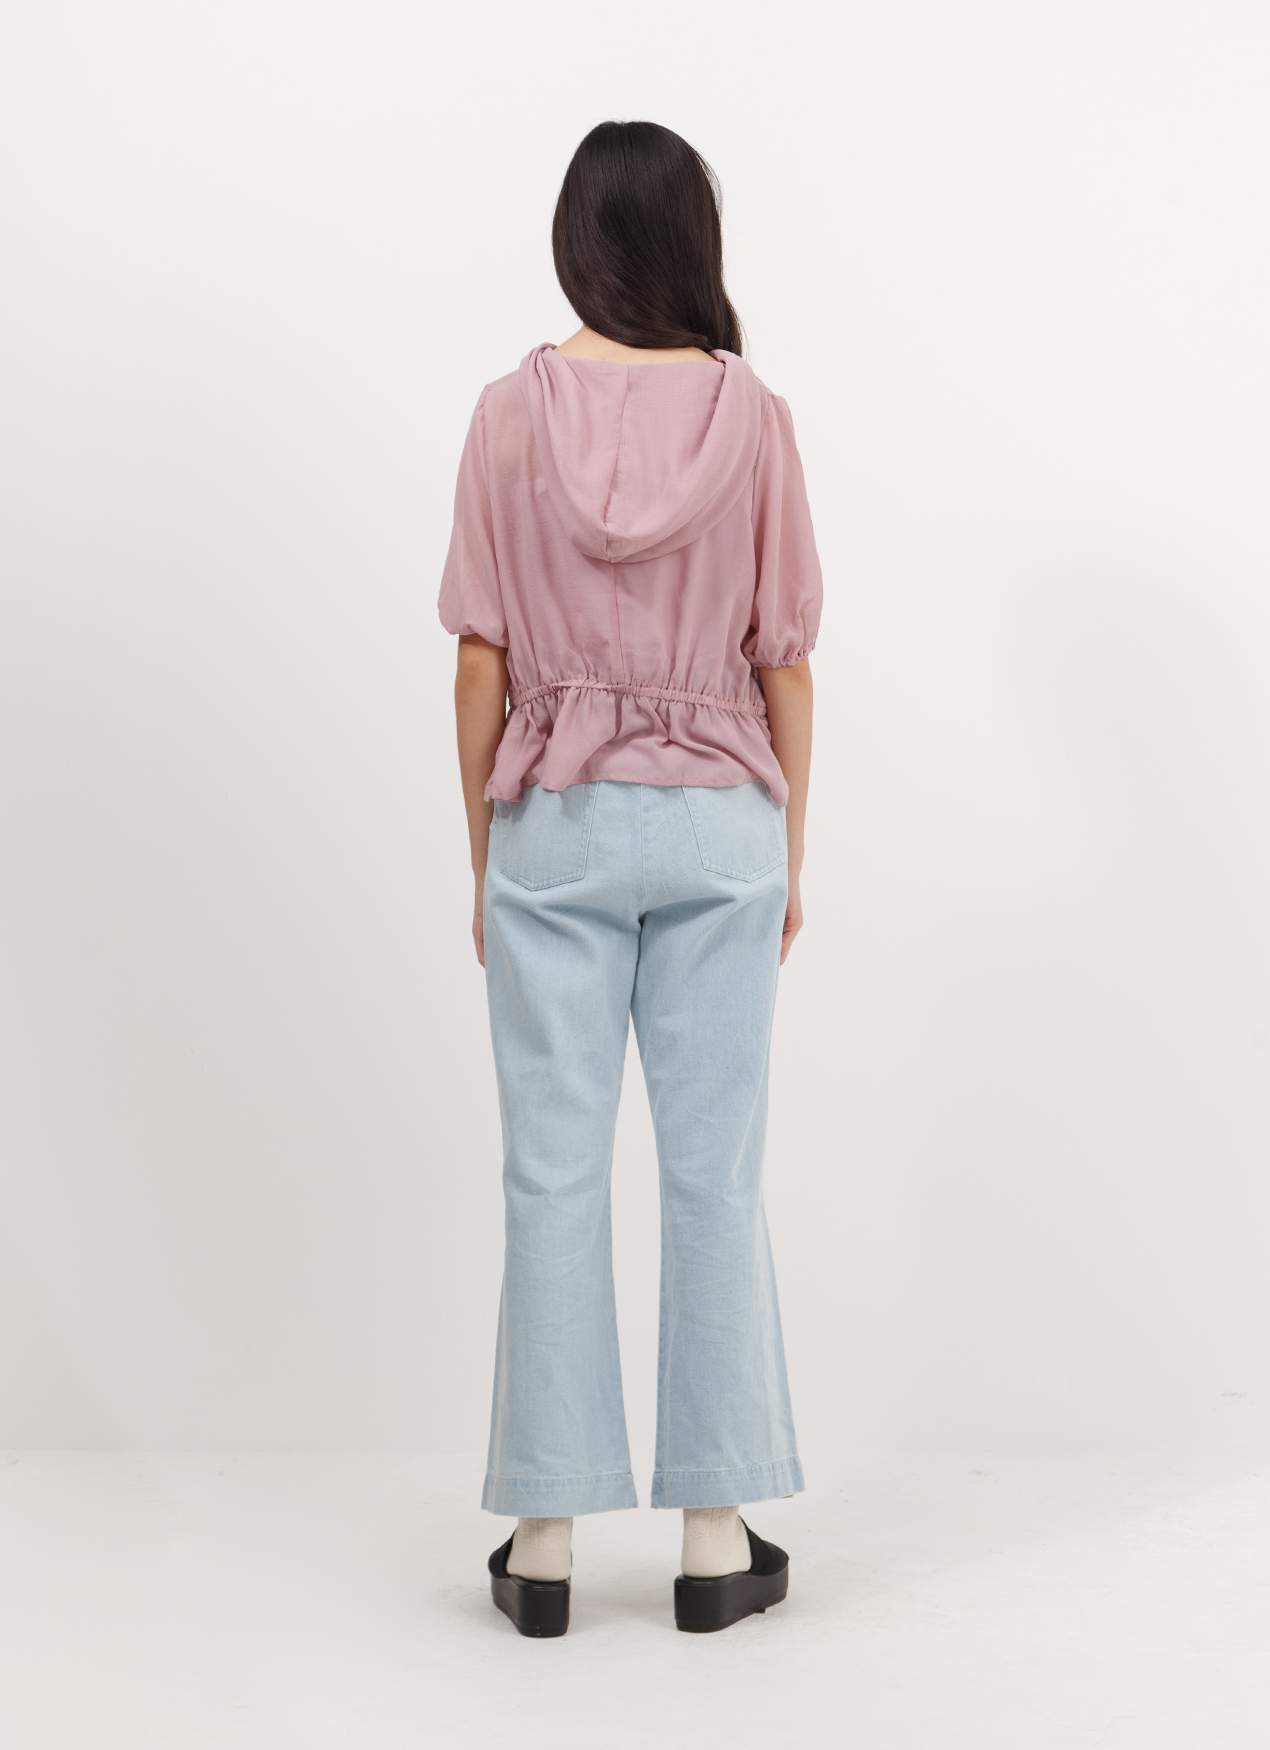 Earth, Music & Ecology Riona Cardigan - Light Pink